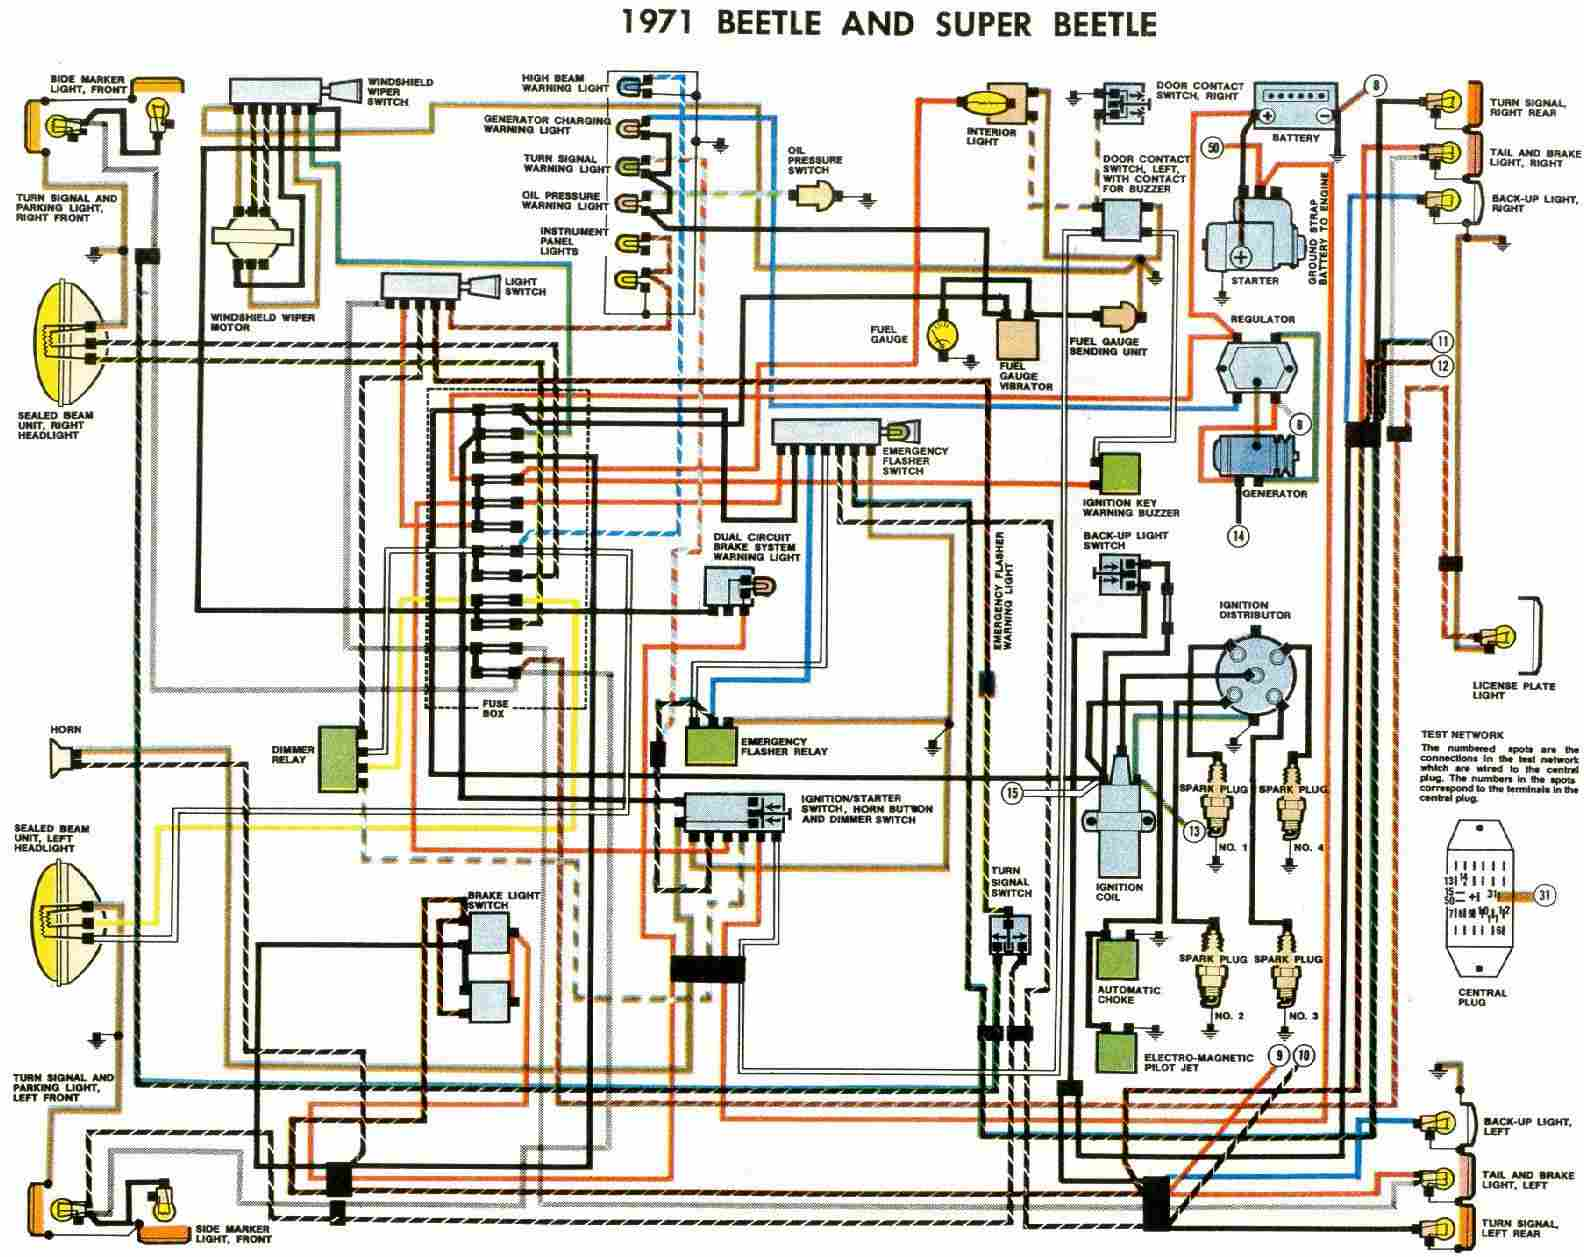 VW Beetle and Super Beetle 1971 Electrical Wiring Diagram | All ...